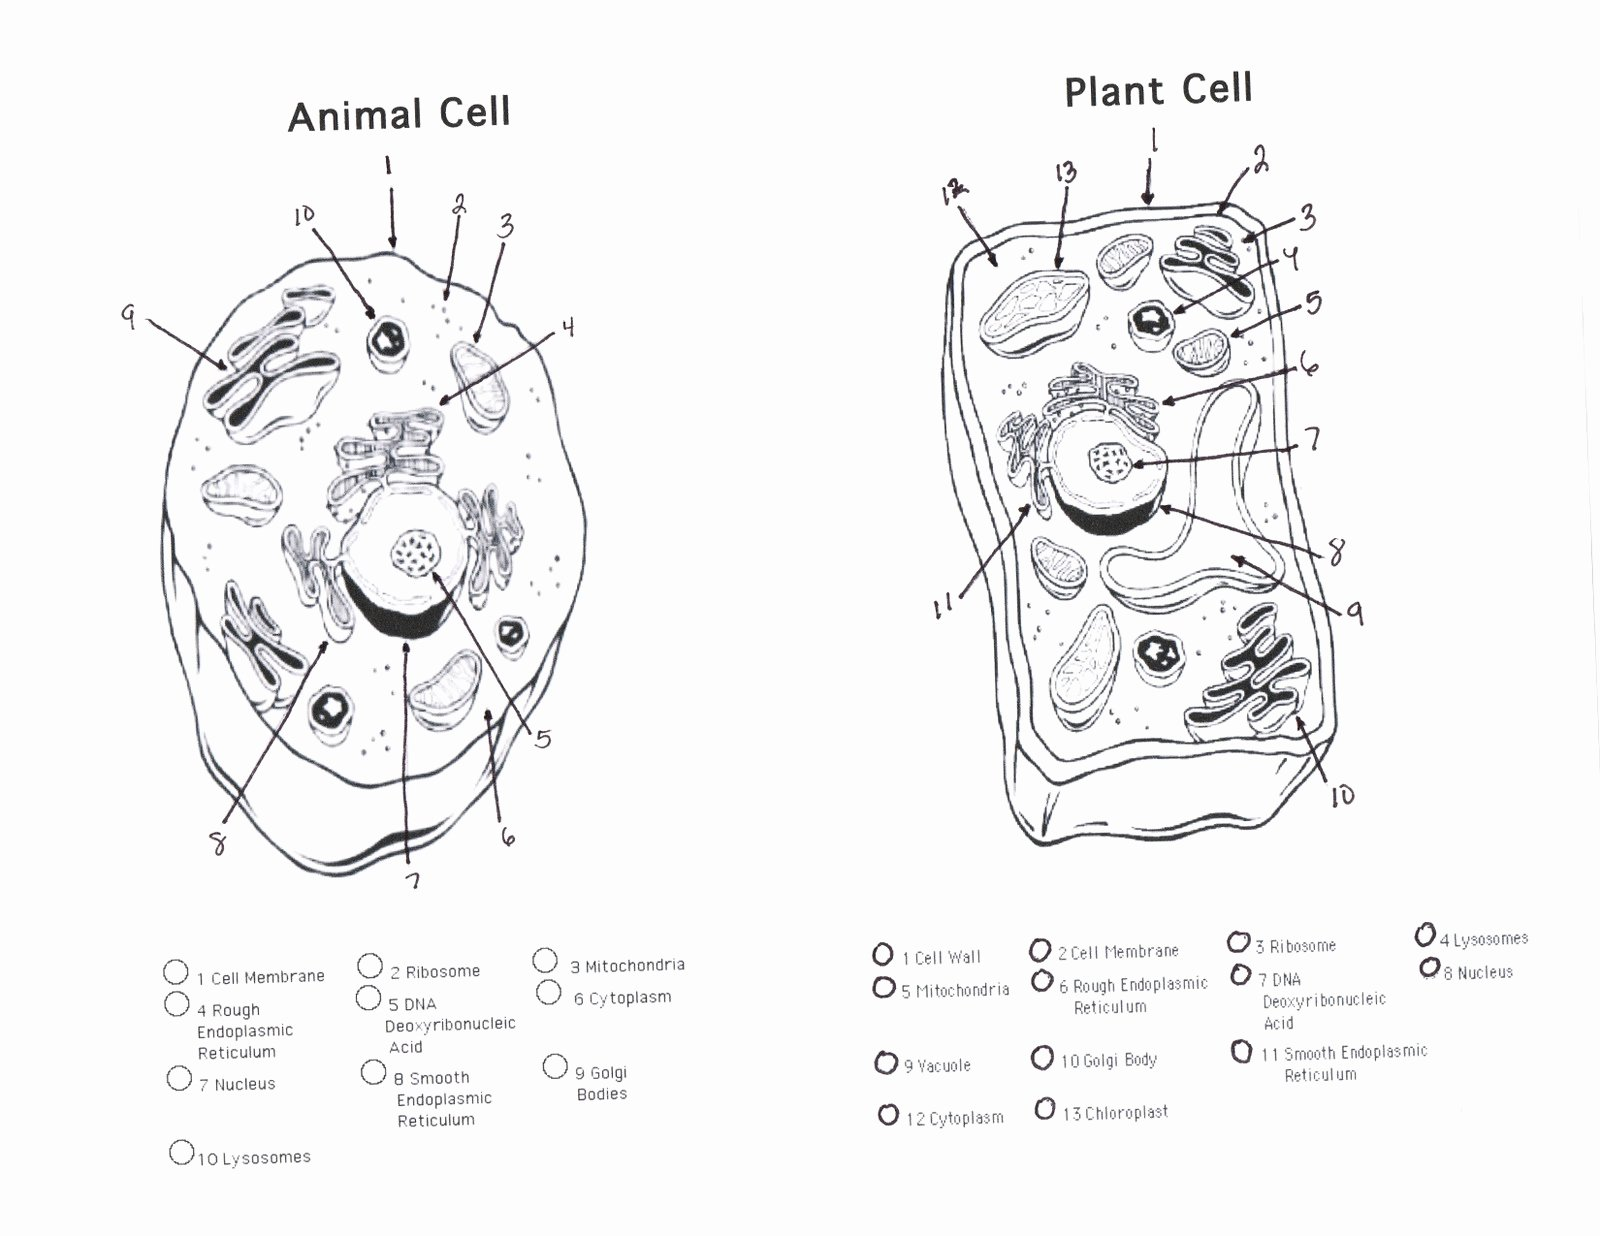 49 Animal Cells Coloring Worksheet